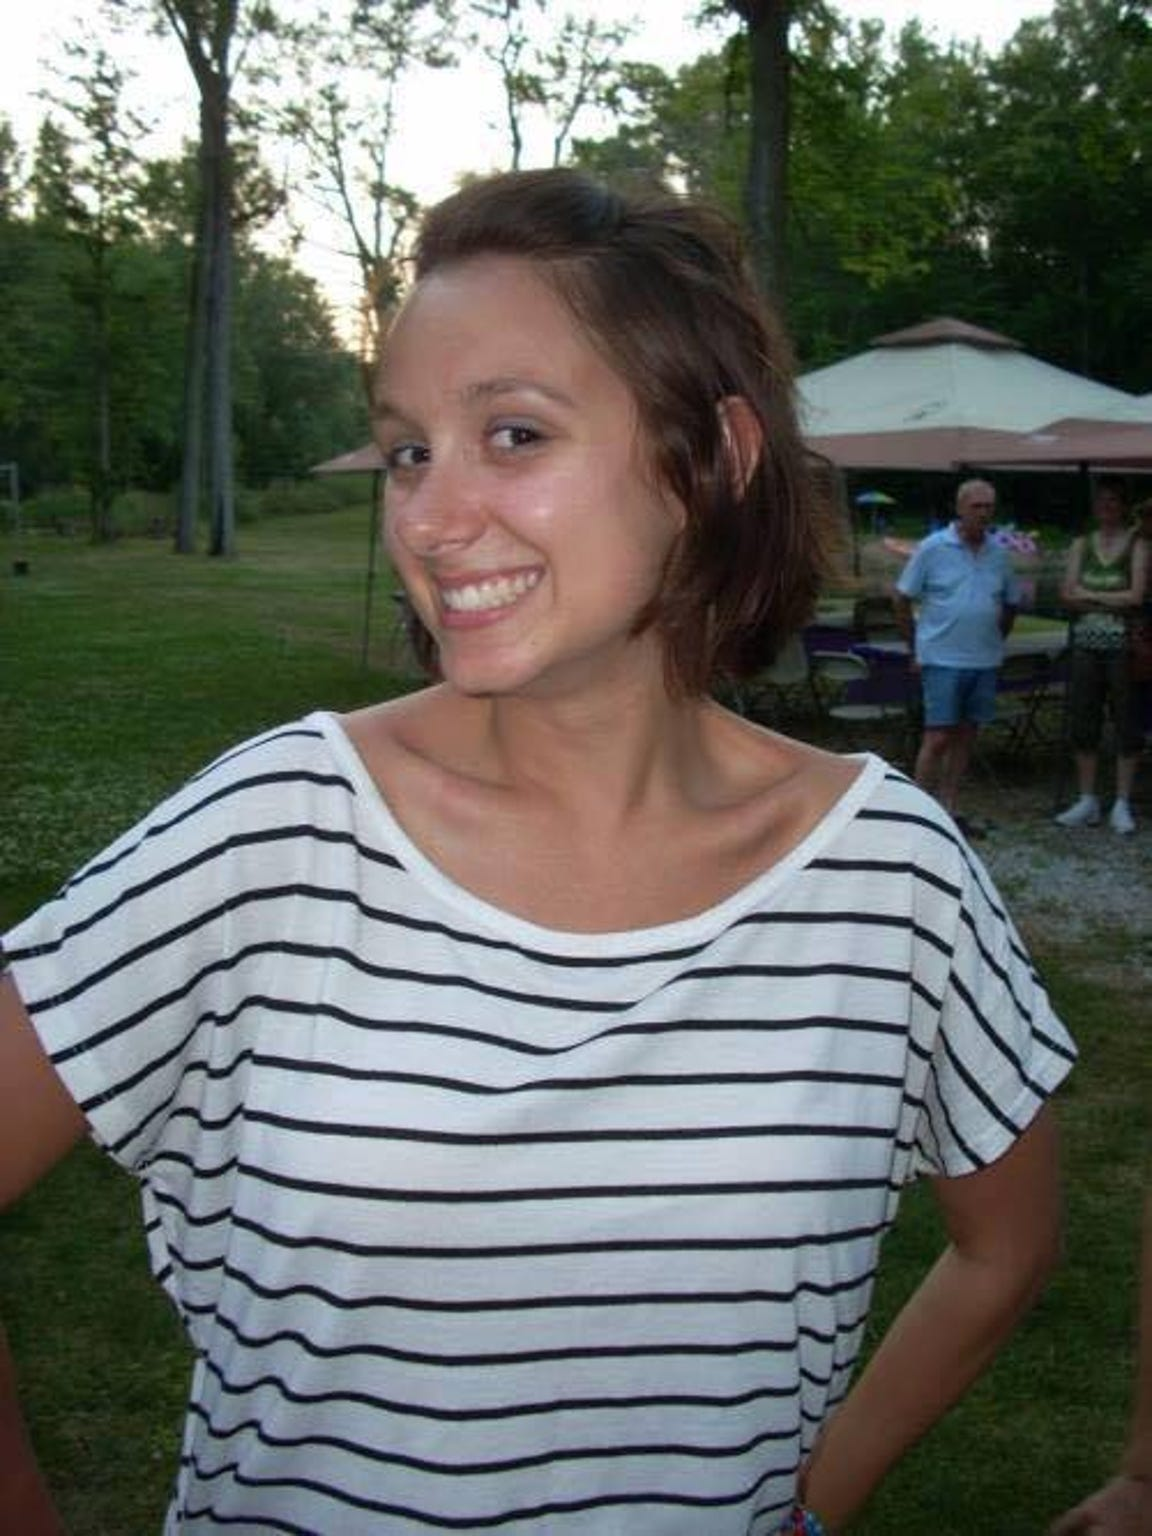 Friends and family are waiting for news about Danielle Stislicki, missing since Dec. 2, 2016.